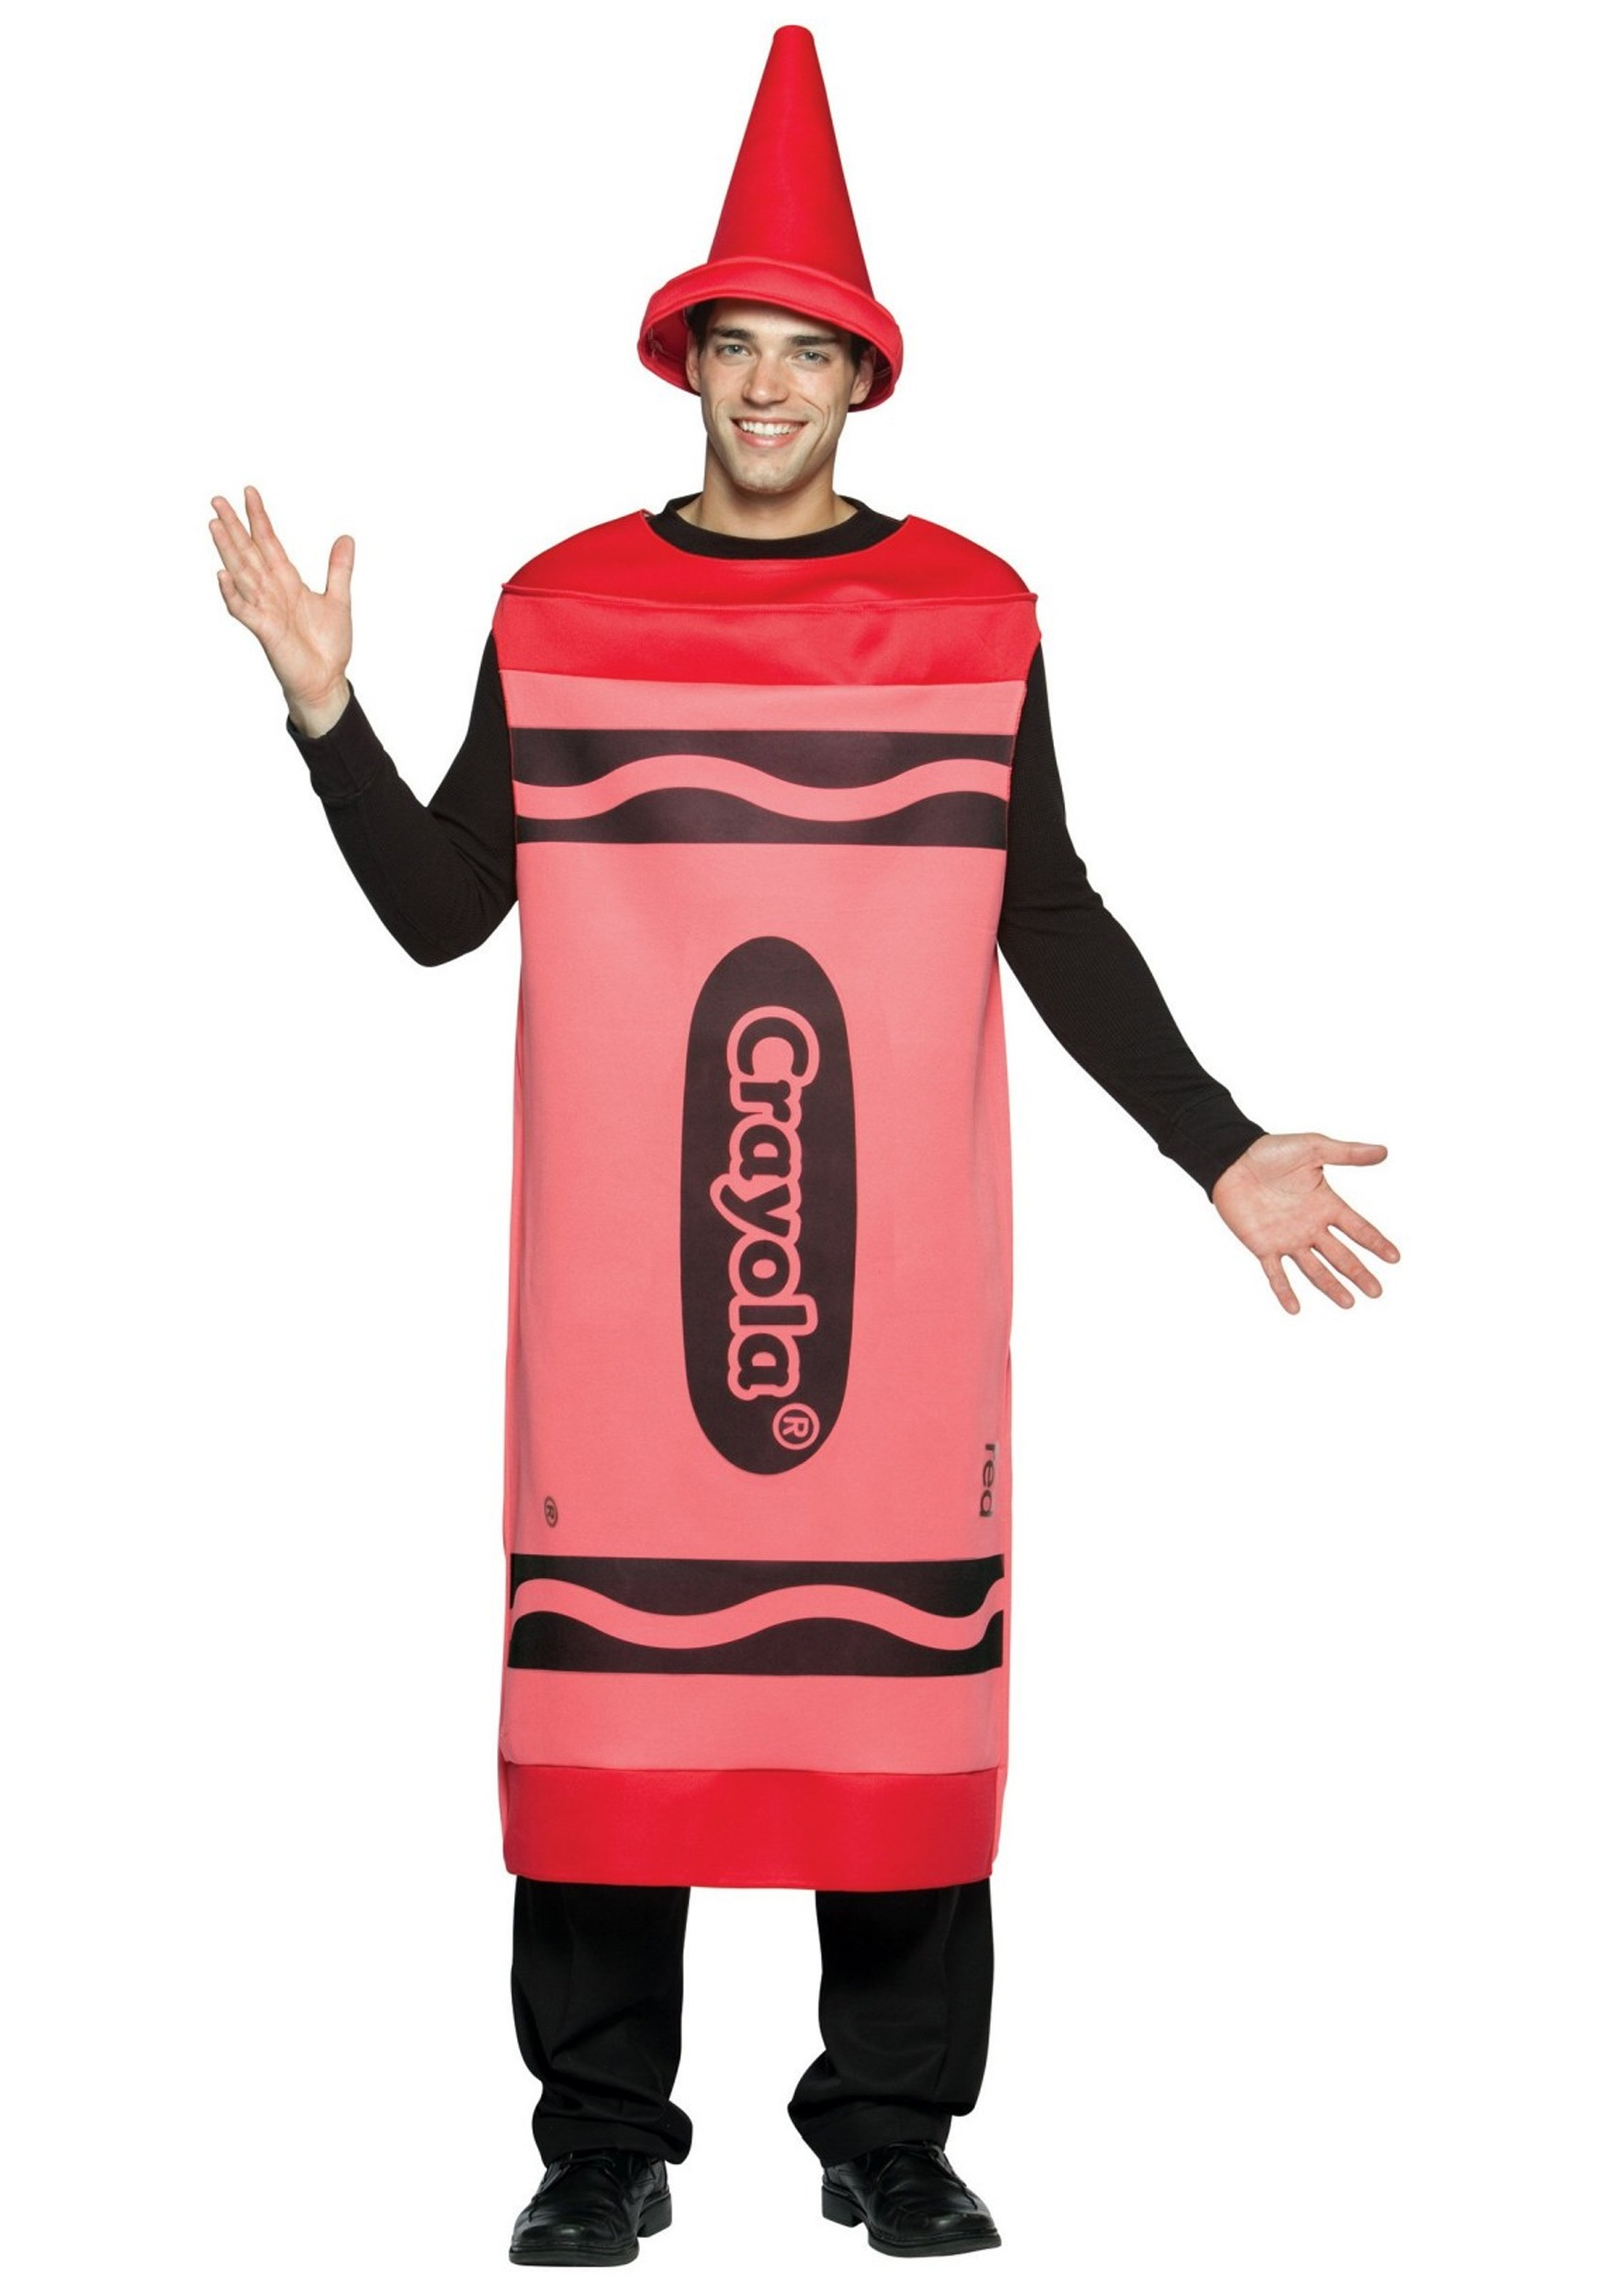 Scotland v Argentina Saturday 24th November 2018 Adult-red-crayon-costume